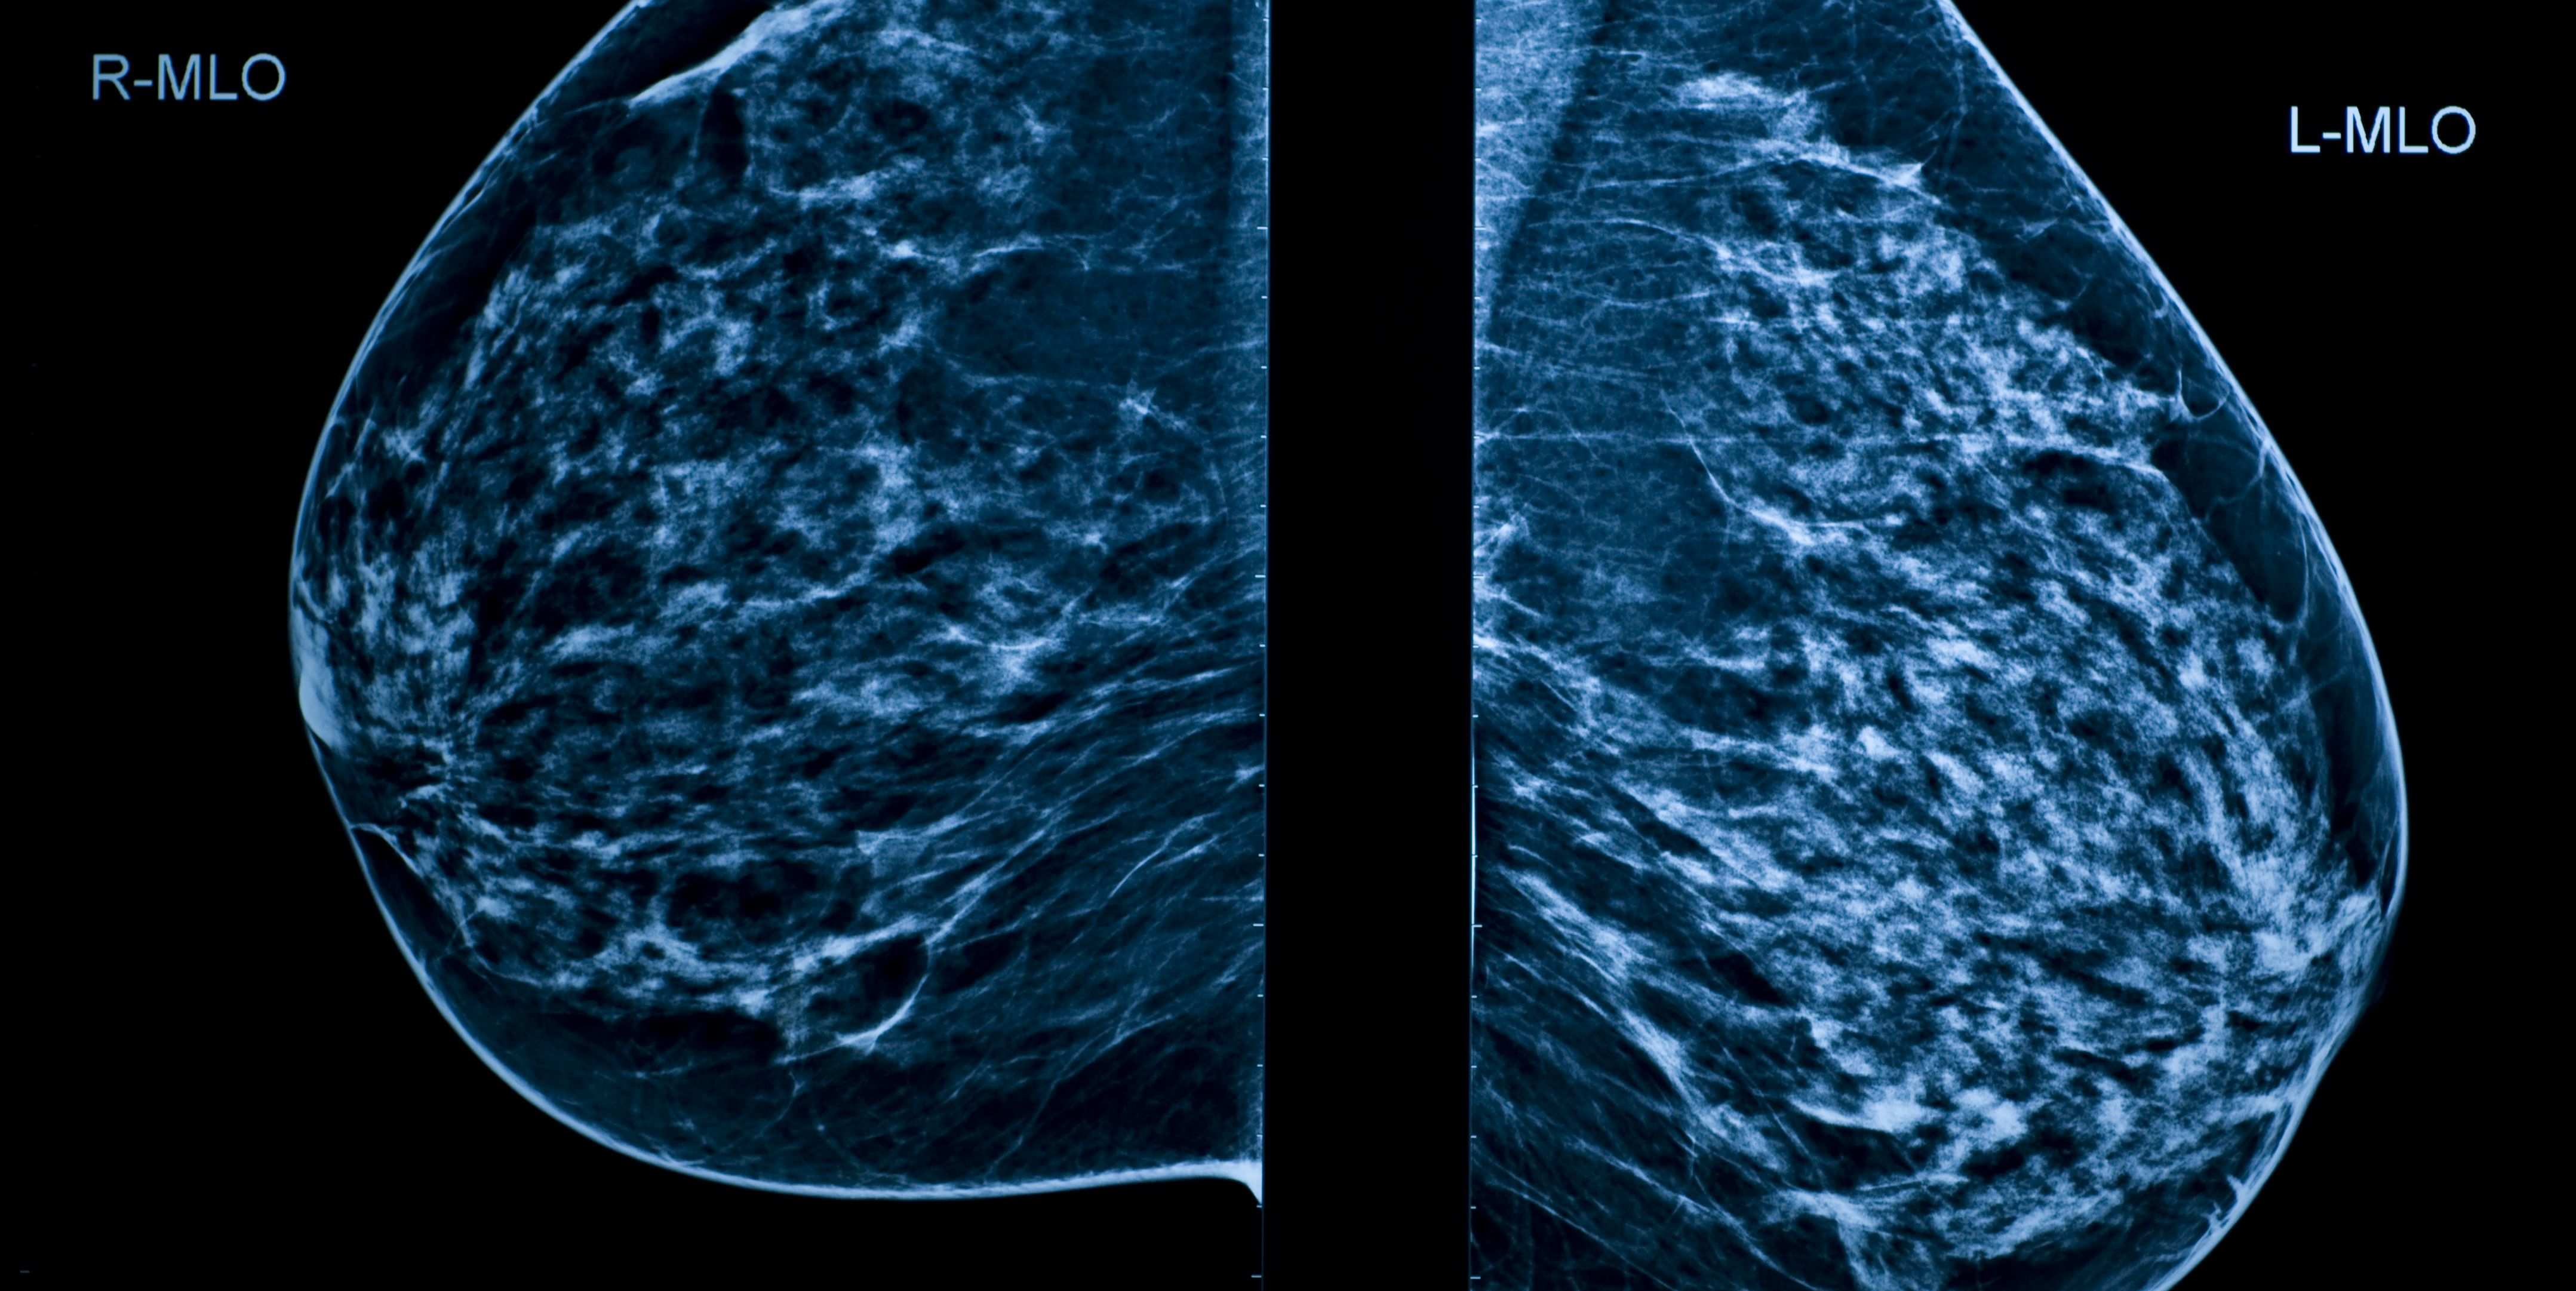 A Mammogram image showing left and right breasts